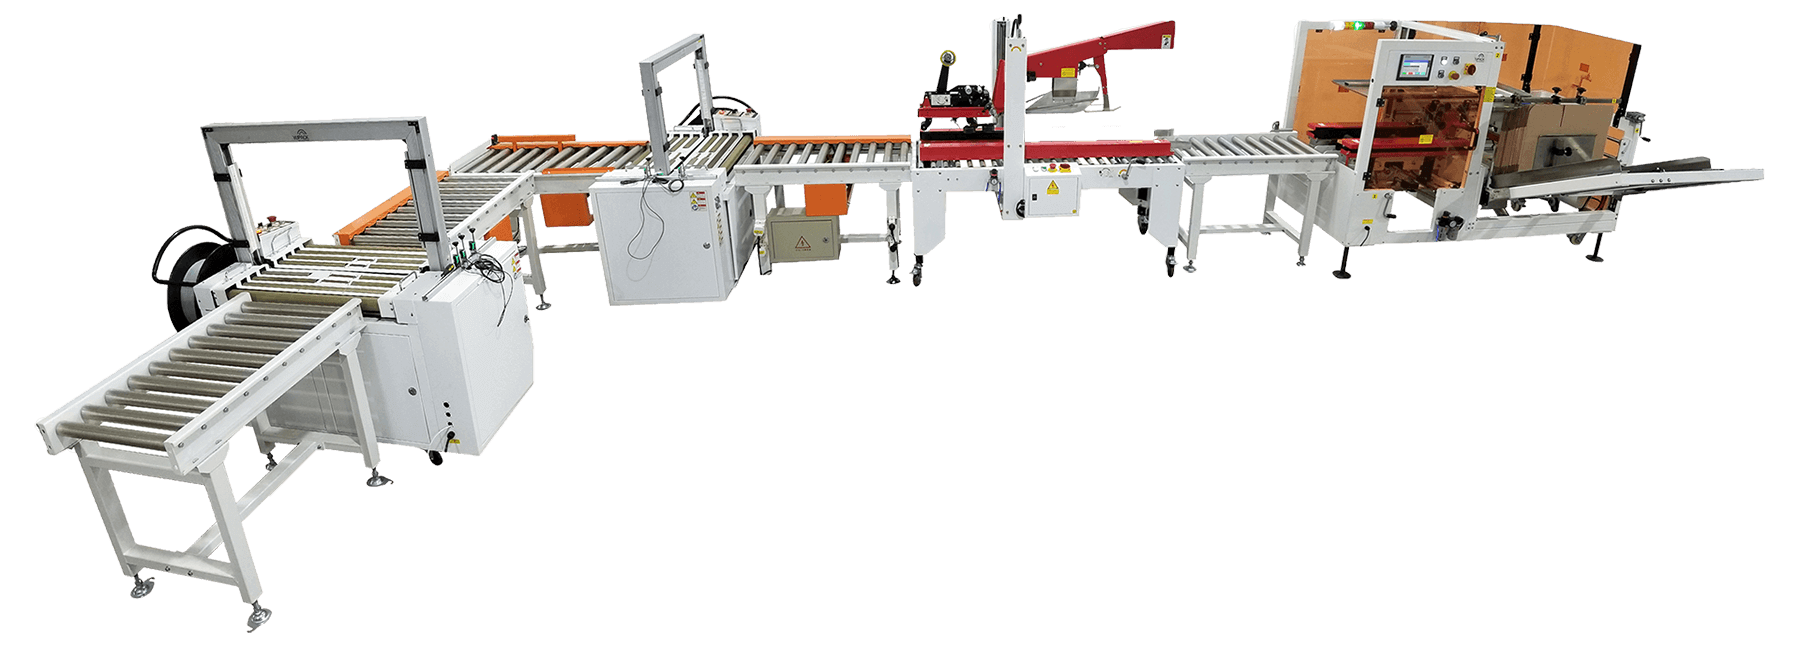 Automatic-case-packing-line-2